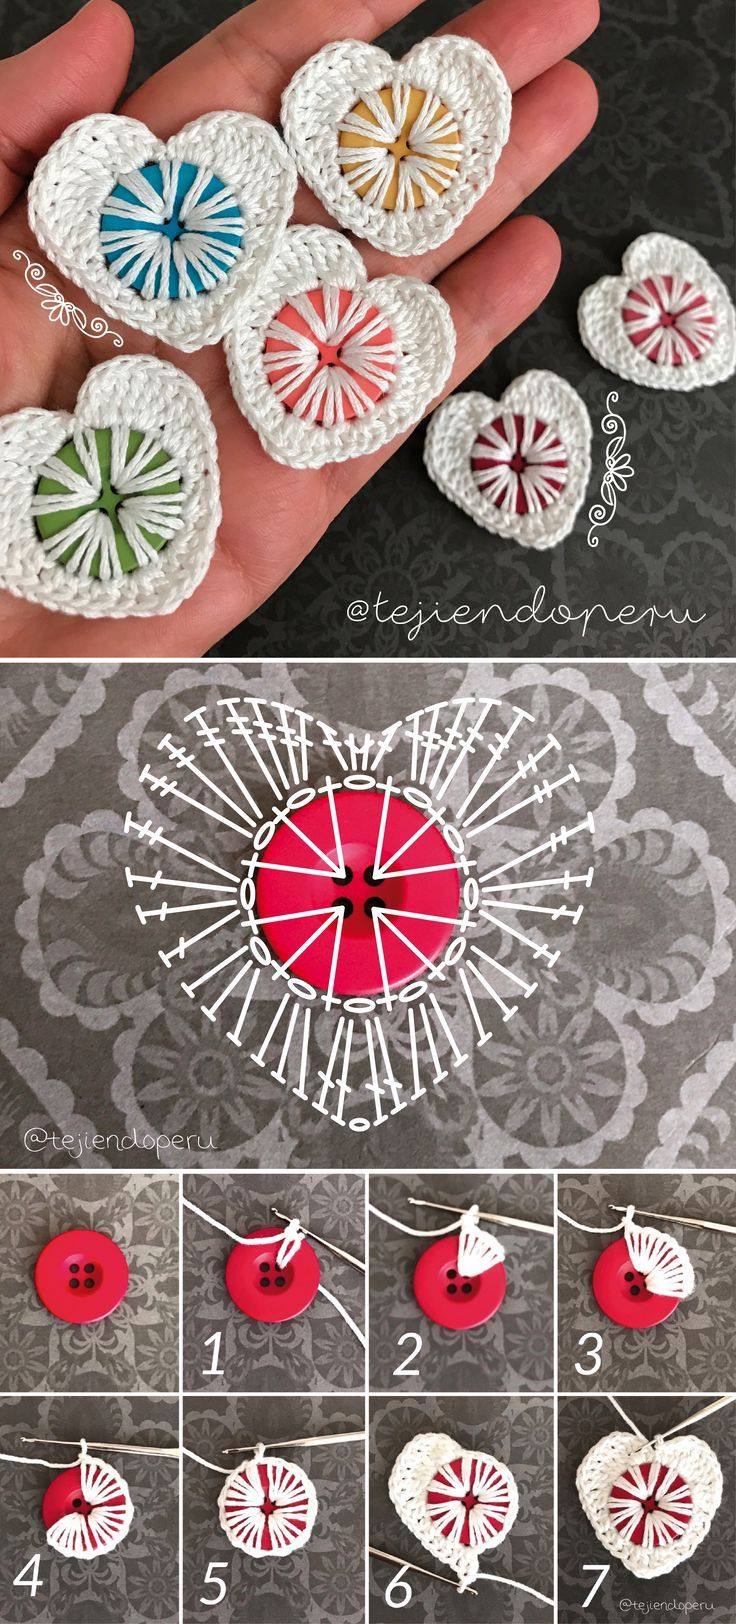 Crochet button hearts ♥ Such a lovely and unique idea!